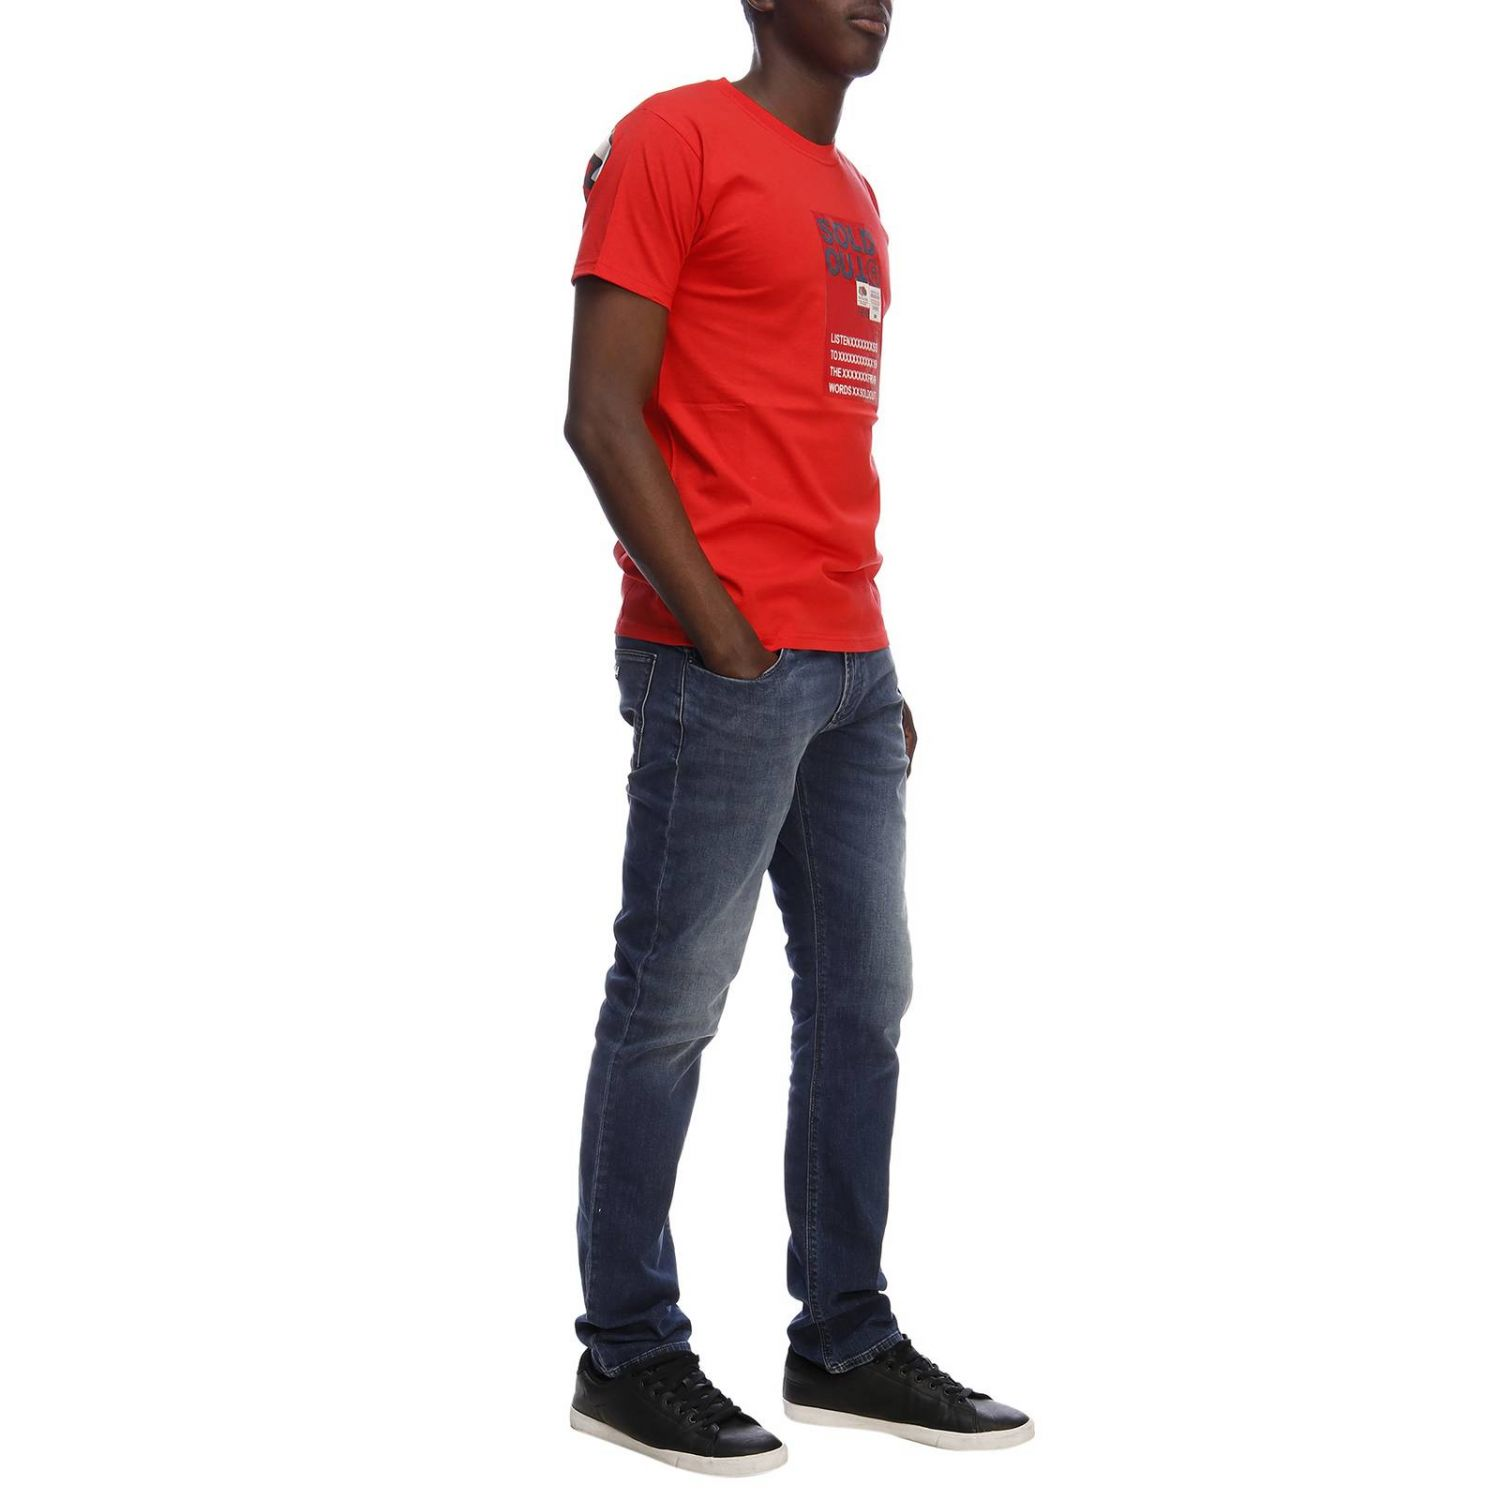 T-shirt men Sold Out red 4